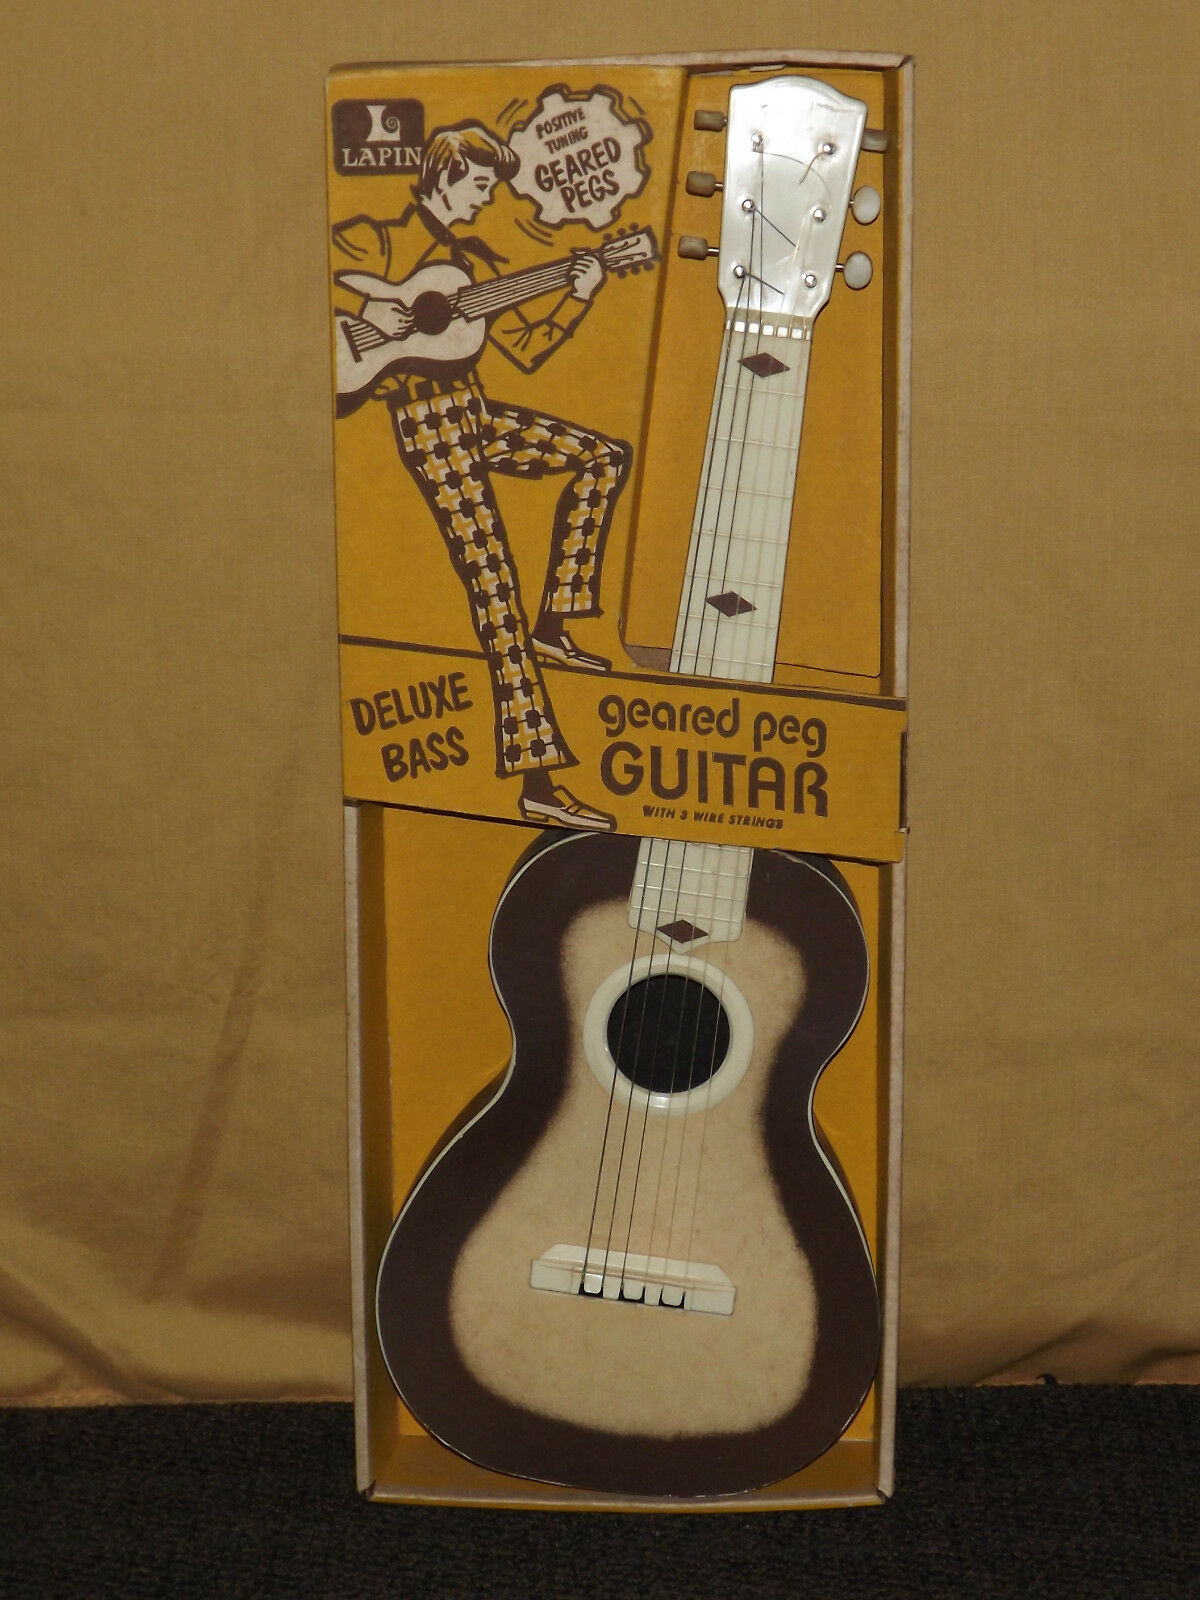 VINTAGE USA  TOY 1950-60S LAPIN GEArosso PEG GUITAR IN BOX